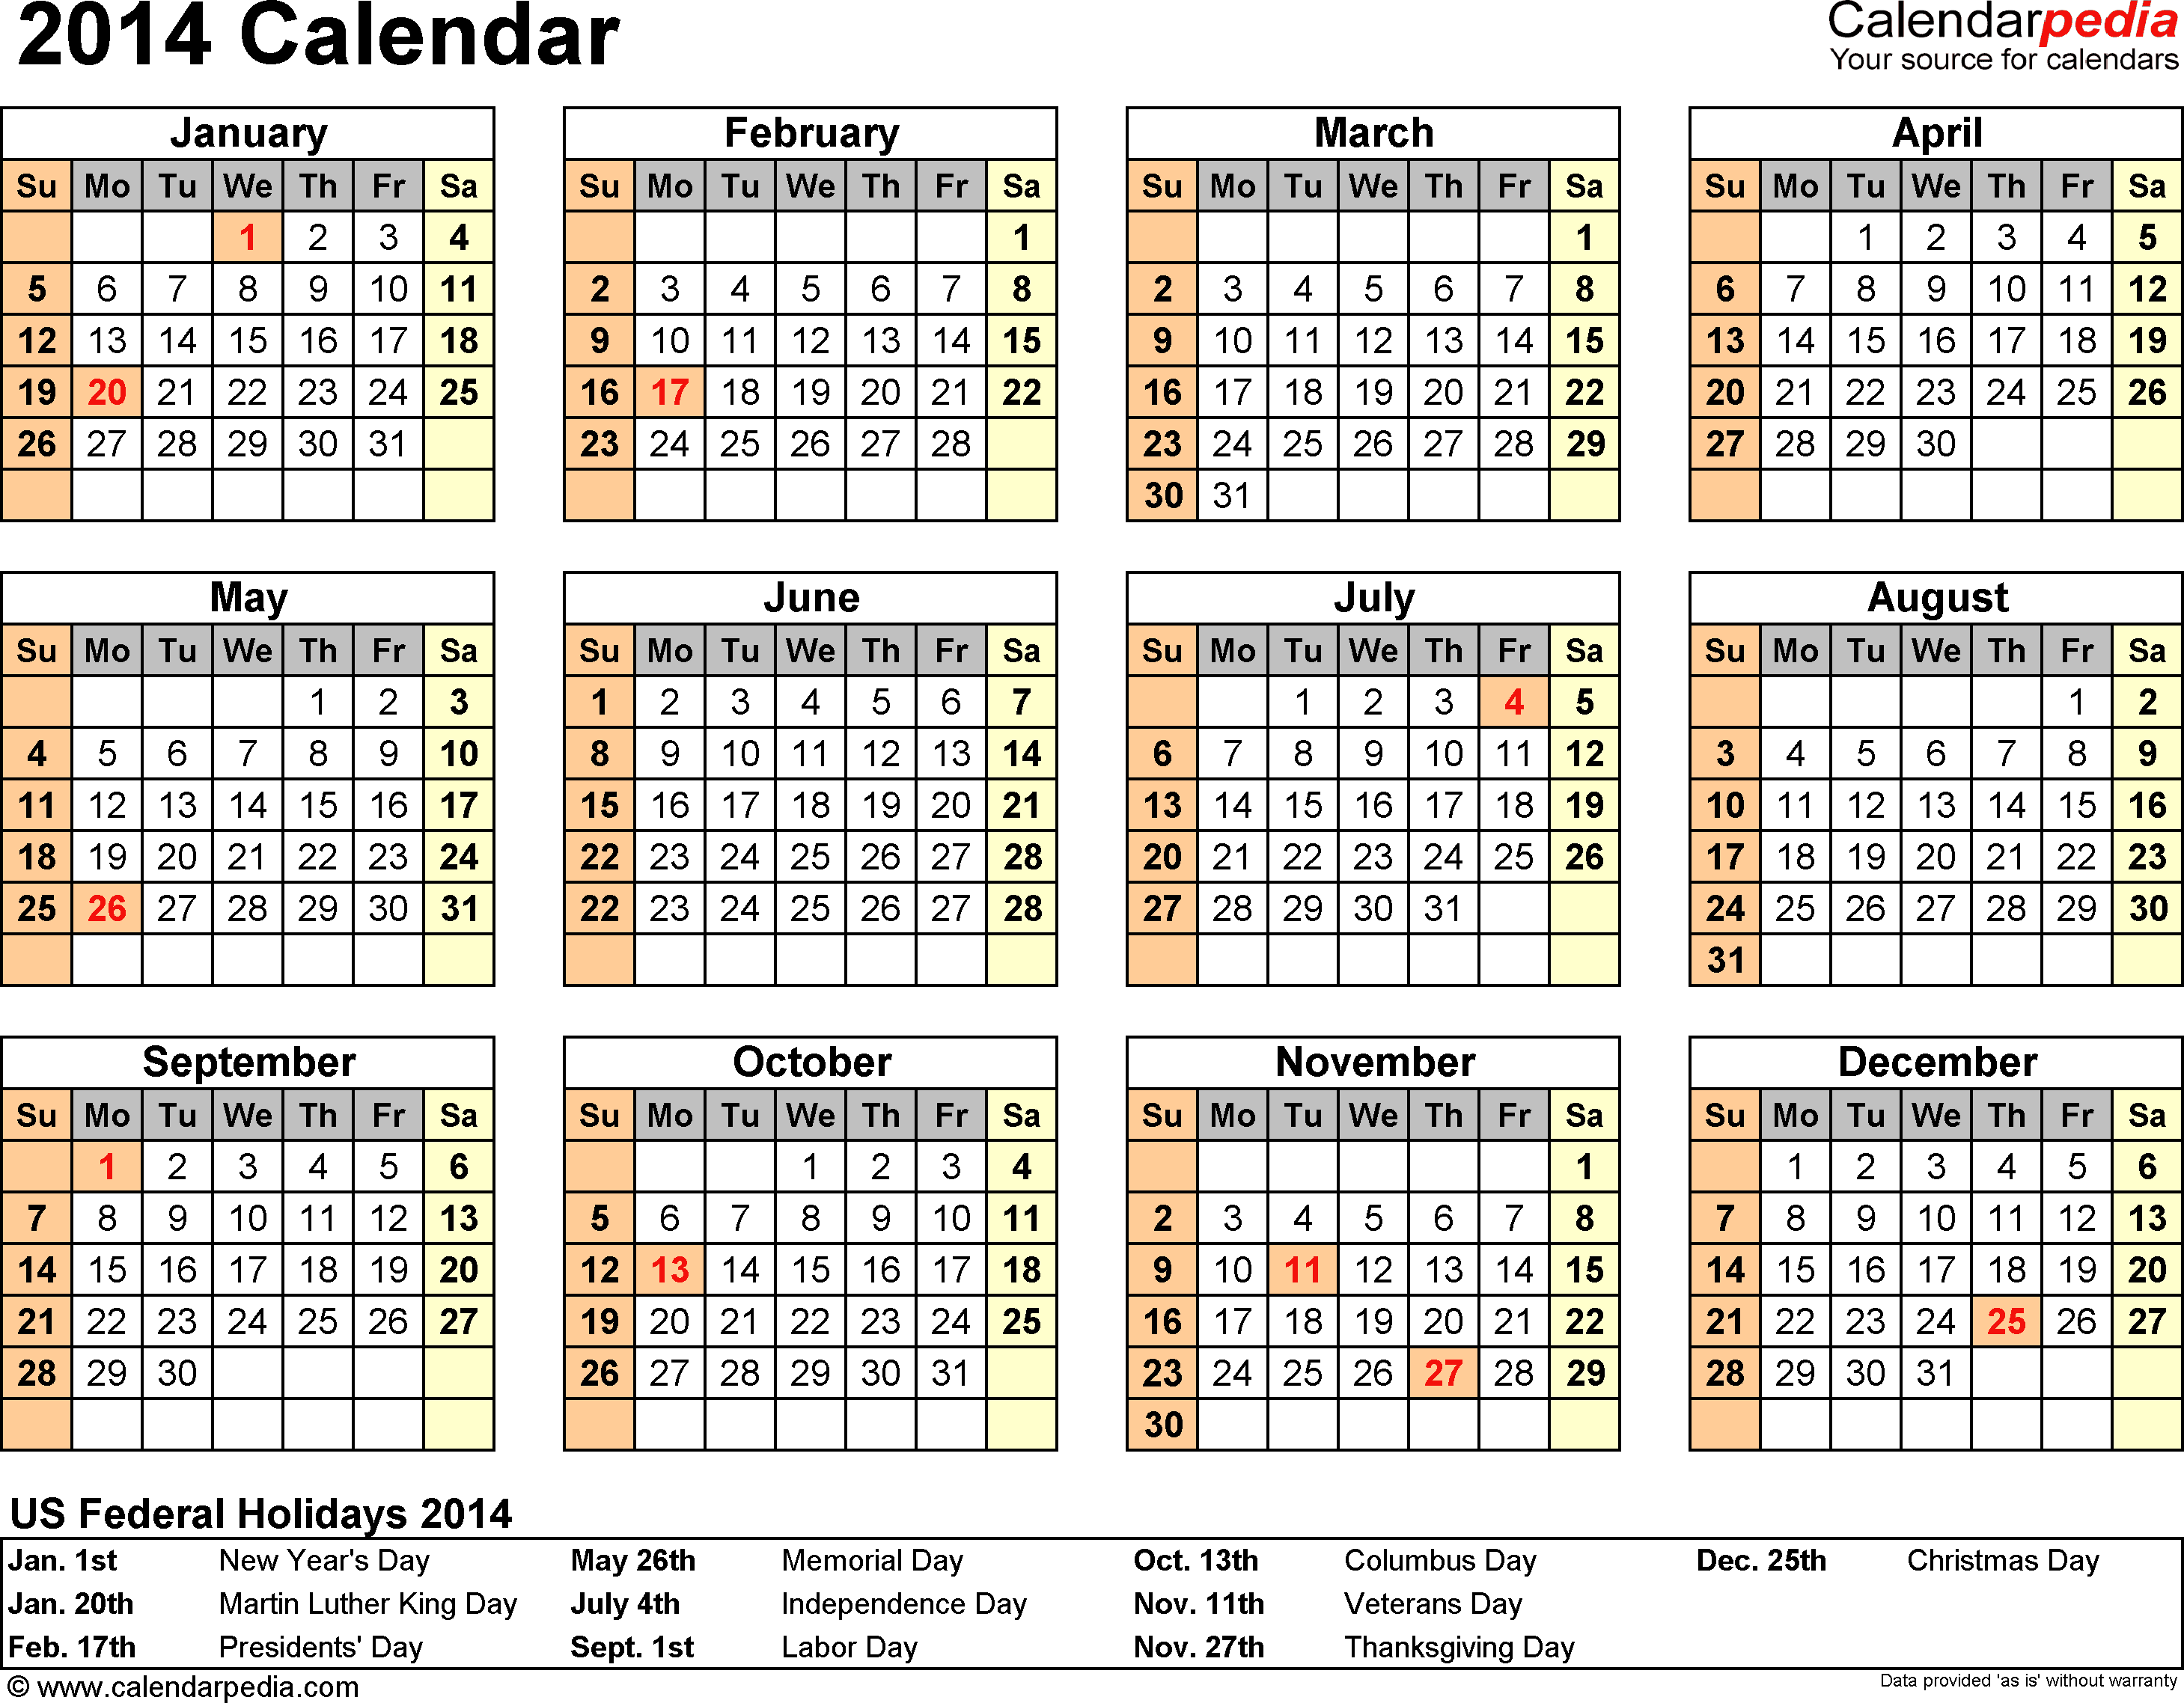 Download Word template for 2014 calendar template 7: year overview, 1 page, with US federal holidays 2014, paper format: US letter